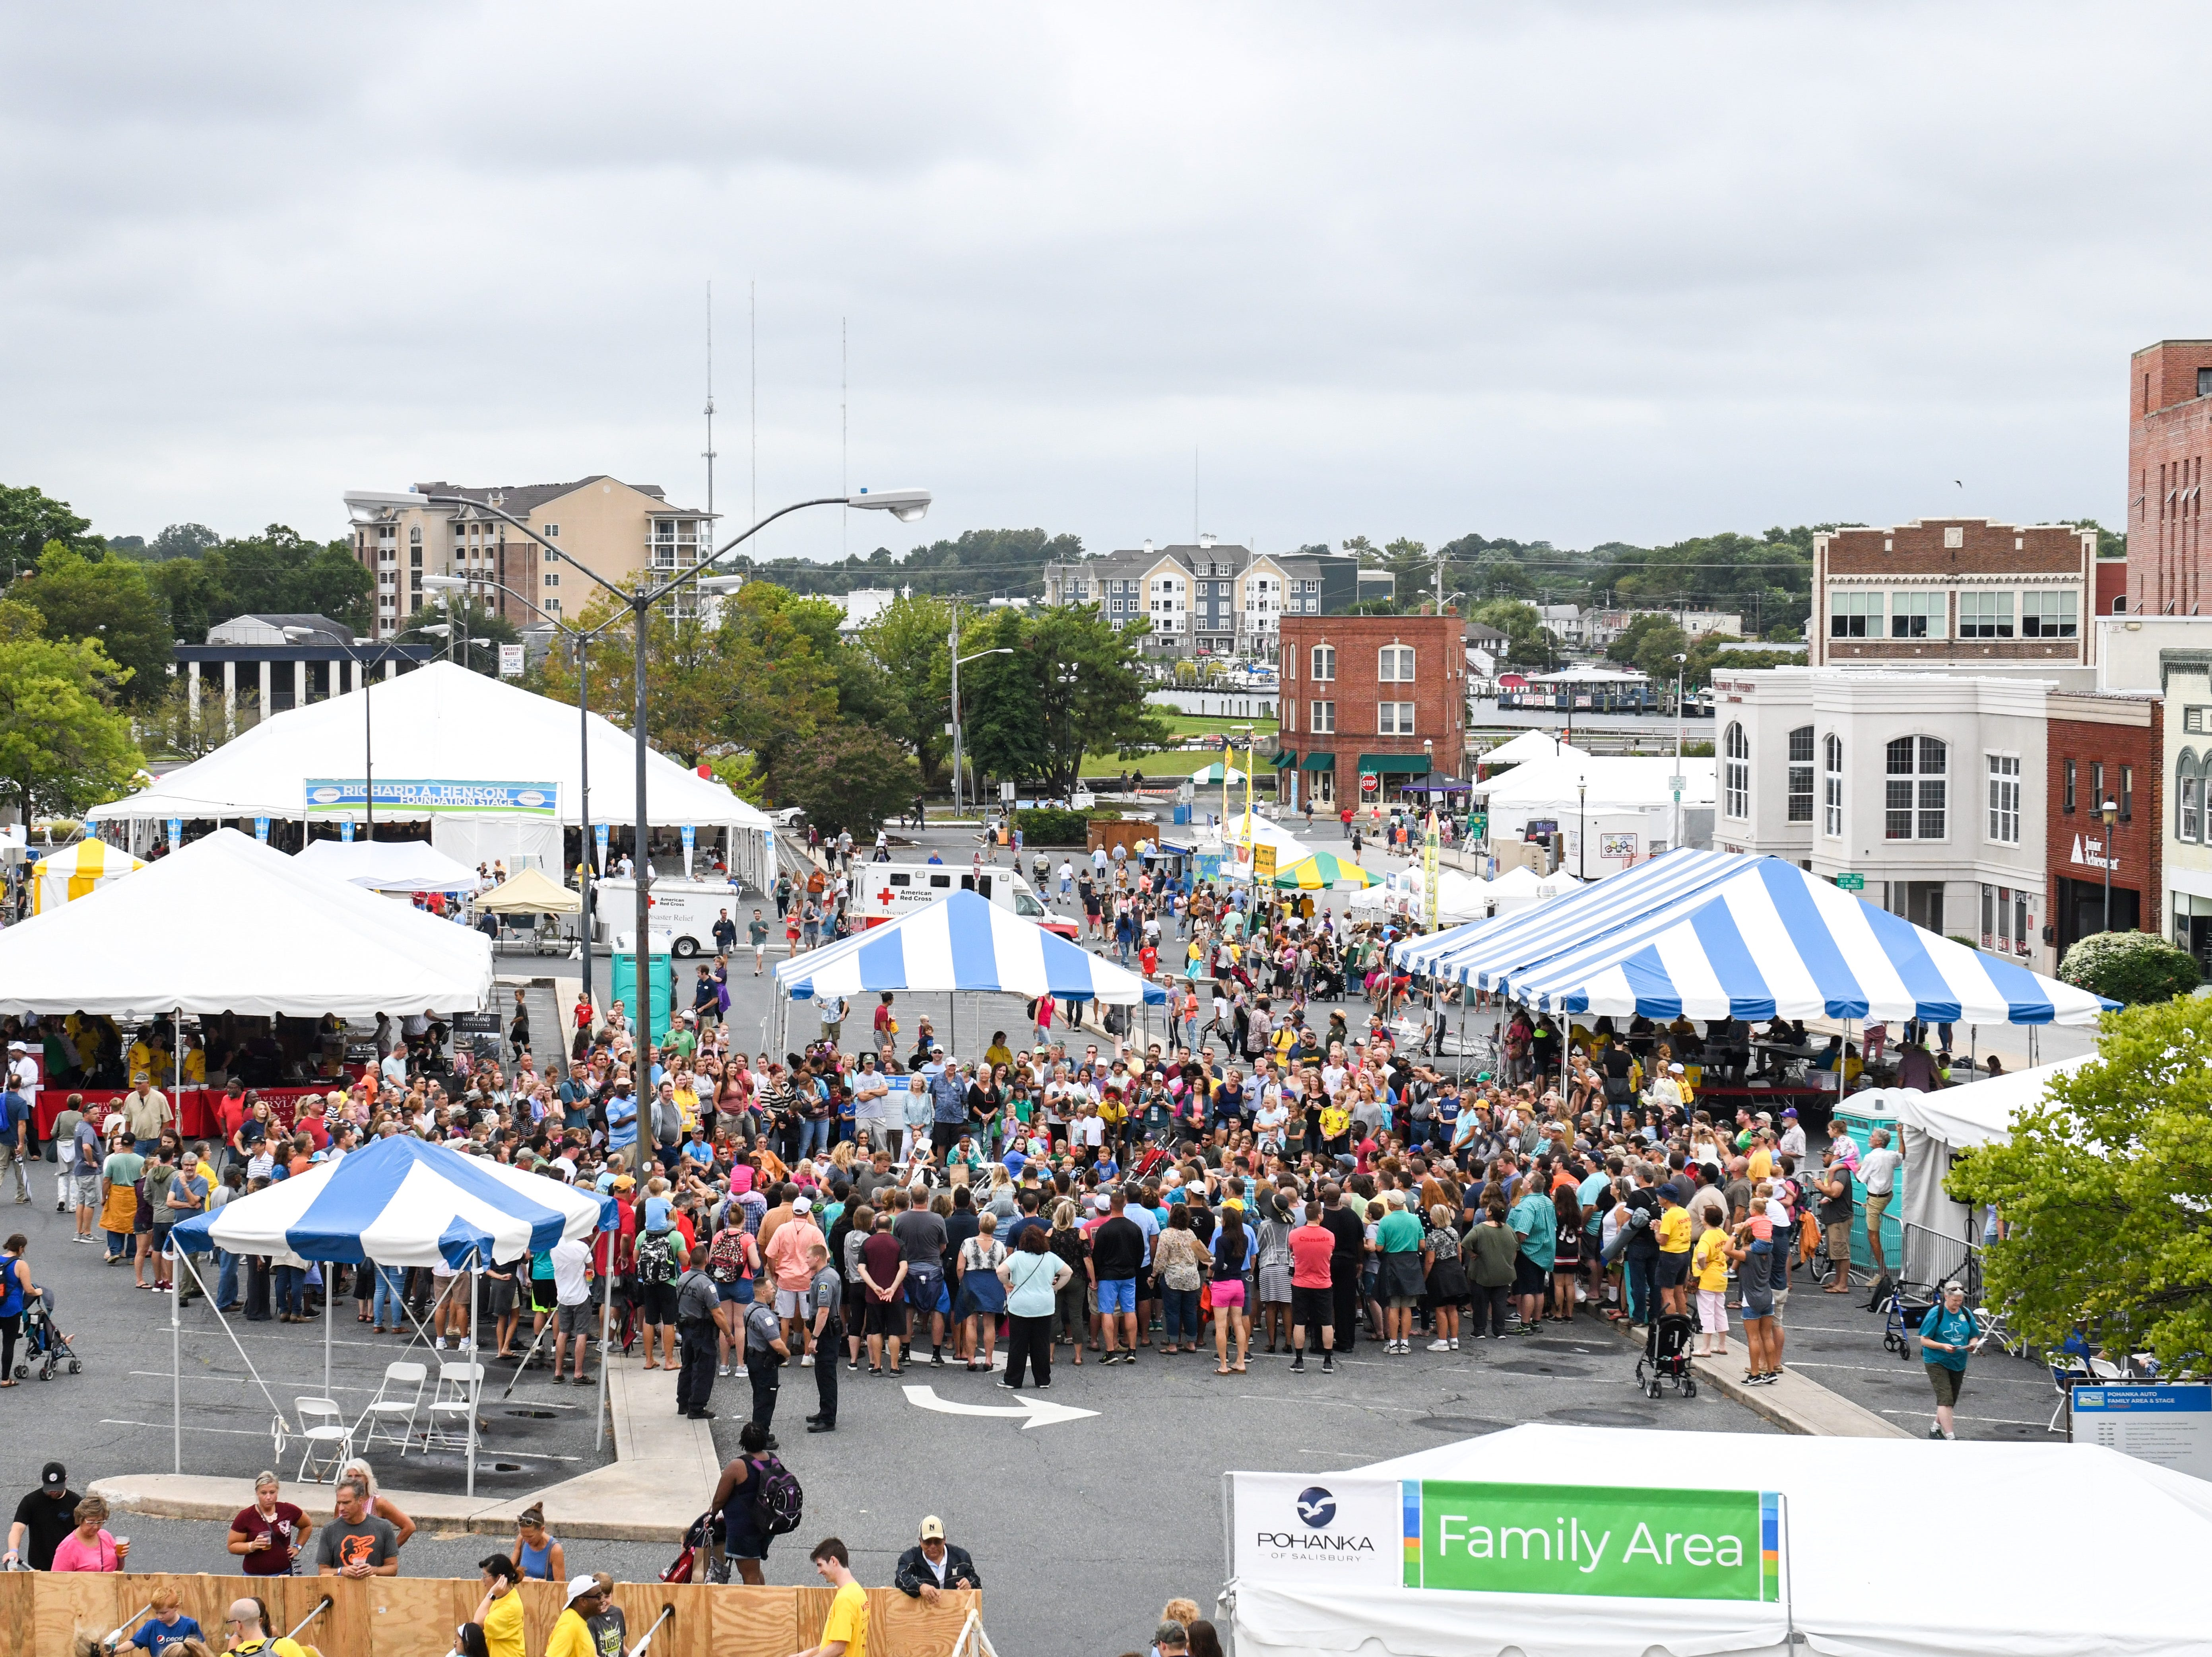 A crowd gathers to watch the Dancing on Air breakdancing group at the National Folk Festival in Salisbury on Saturday, Sept. 8.